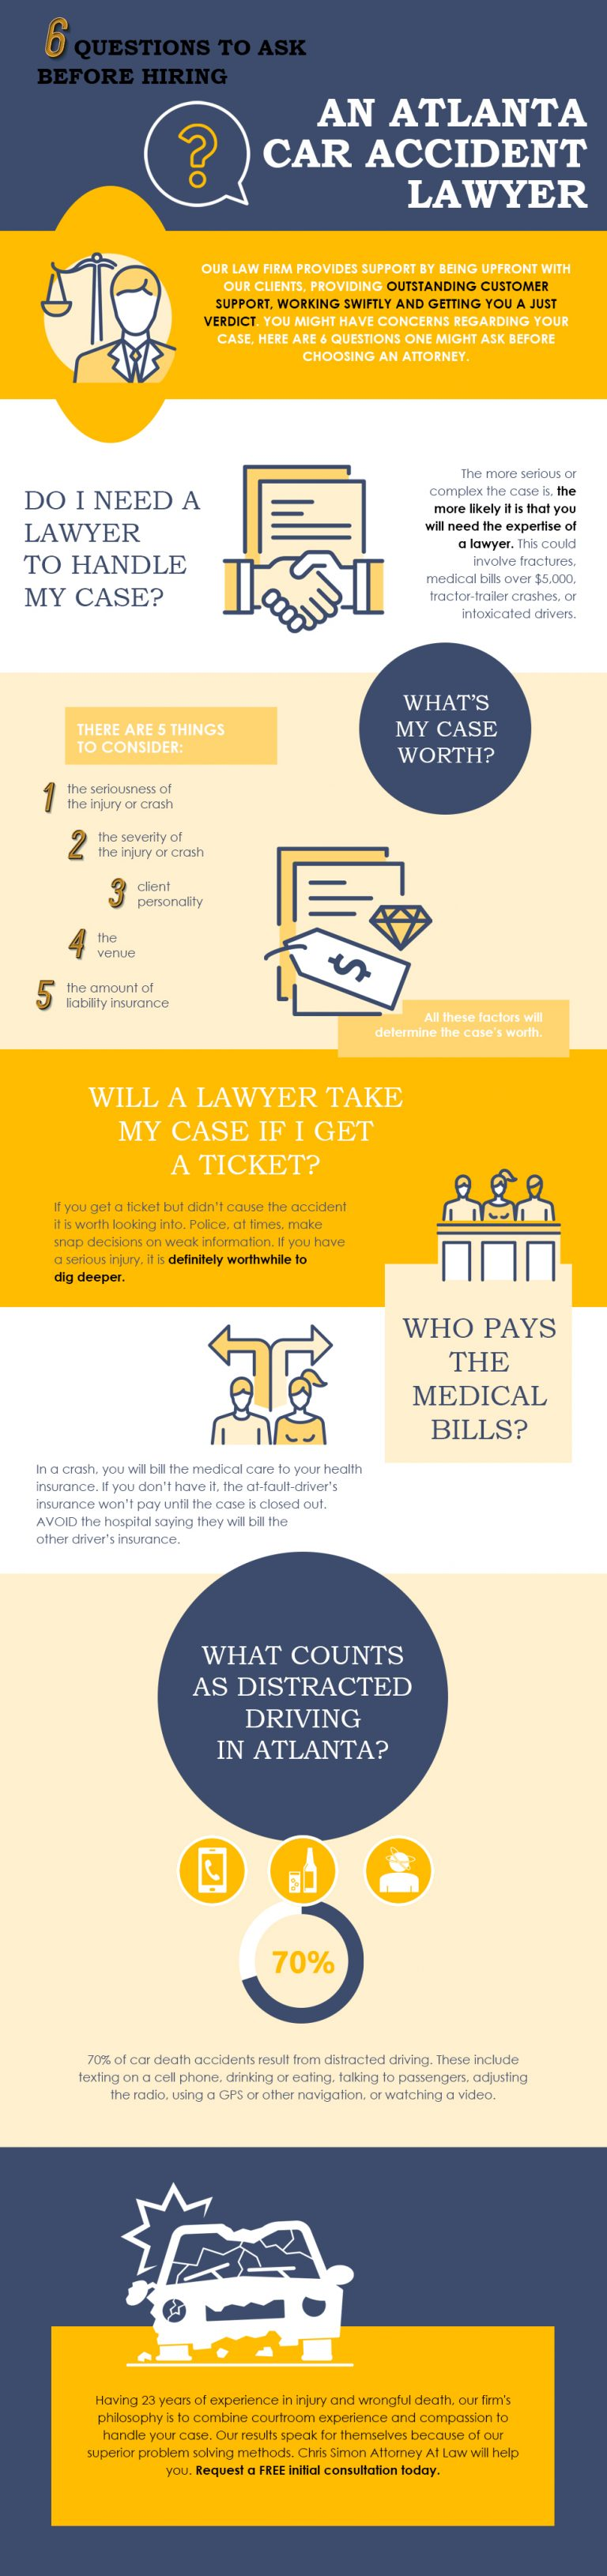 6 Questions to Ask Before Hiring an Atlanta Car Accident Lawyer #infographic #Law & Legal #Hiring #Car Accident Lawyer #Lawyer